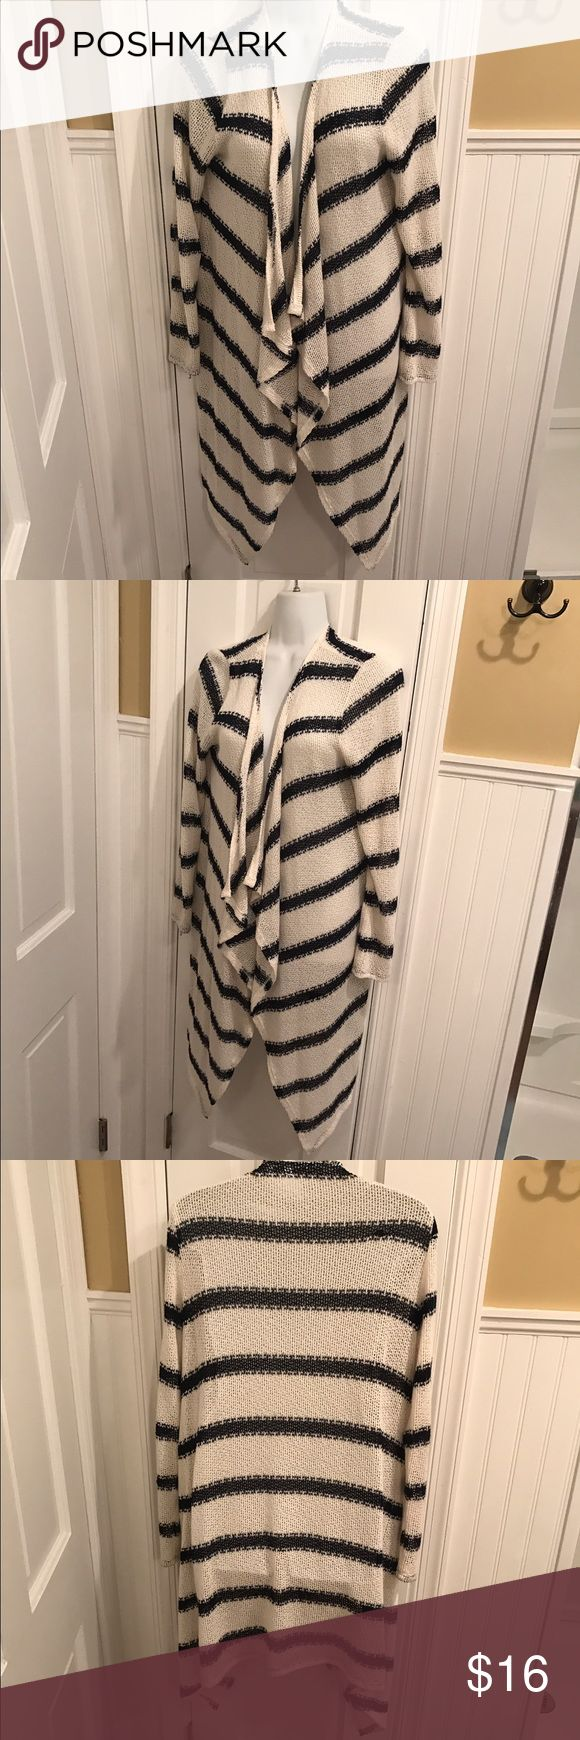 "Striped cardigan Open draped cardigan. Light weight. About 36"" long in the back. Slightly longer in the front. New York & Company Sweaters Cardigans"